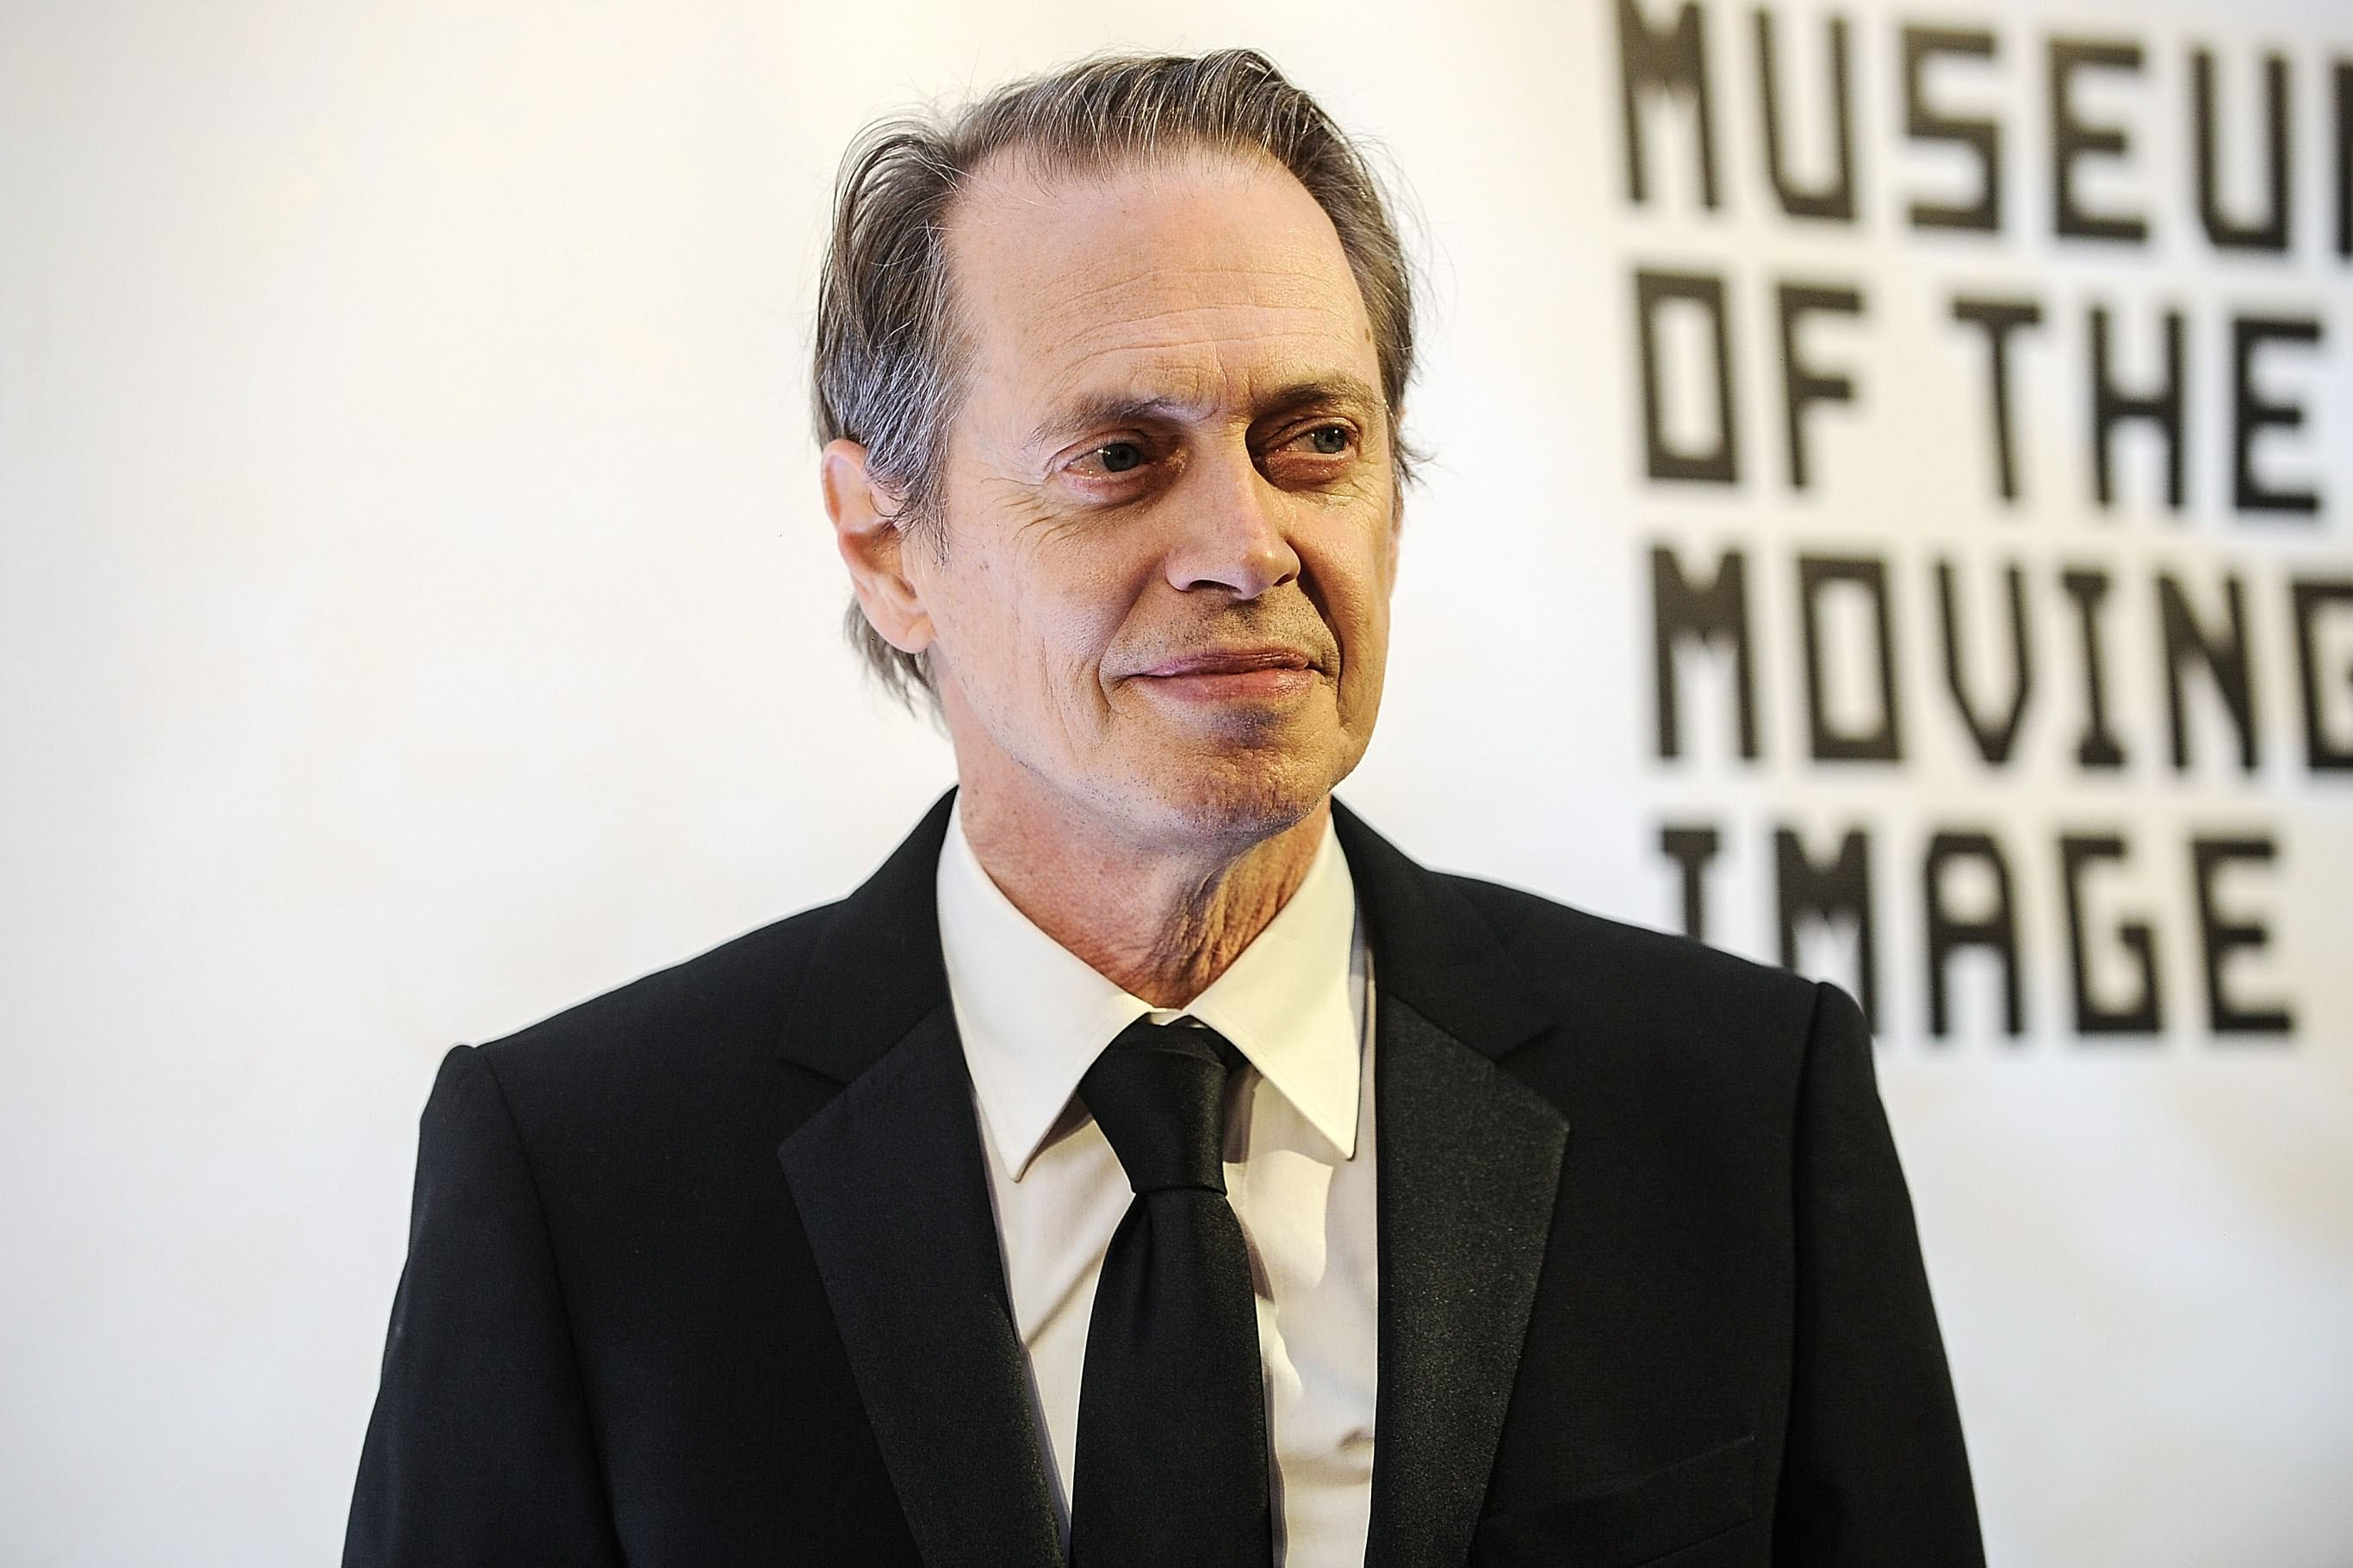 Steve Buscemi Computer Backgrounds